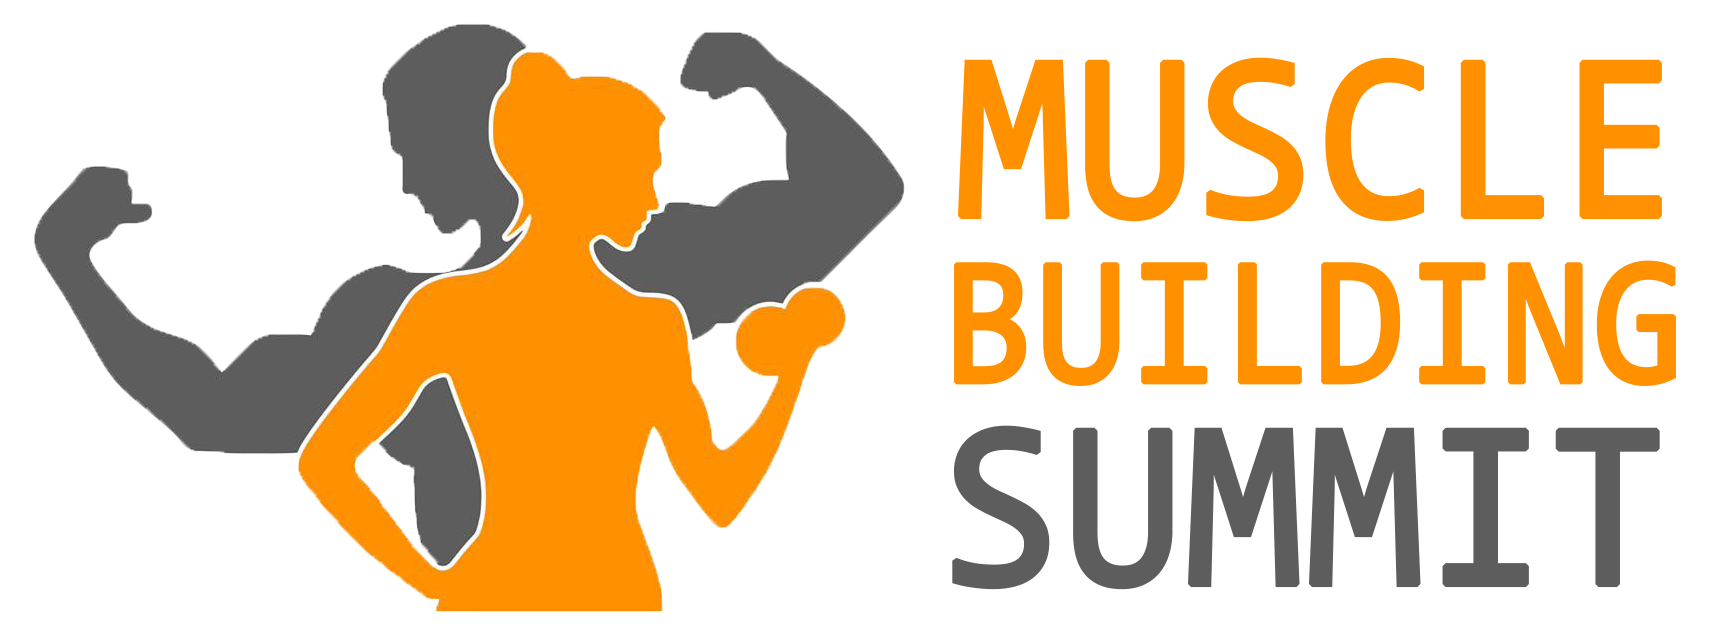 jpg freeuse download Building summit . Muscle clipart muscle movement.